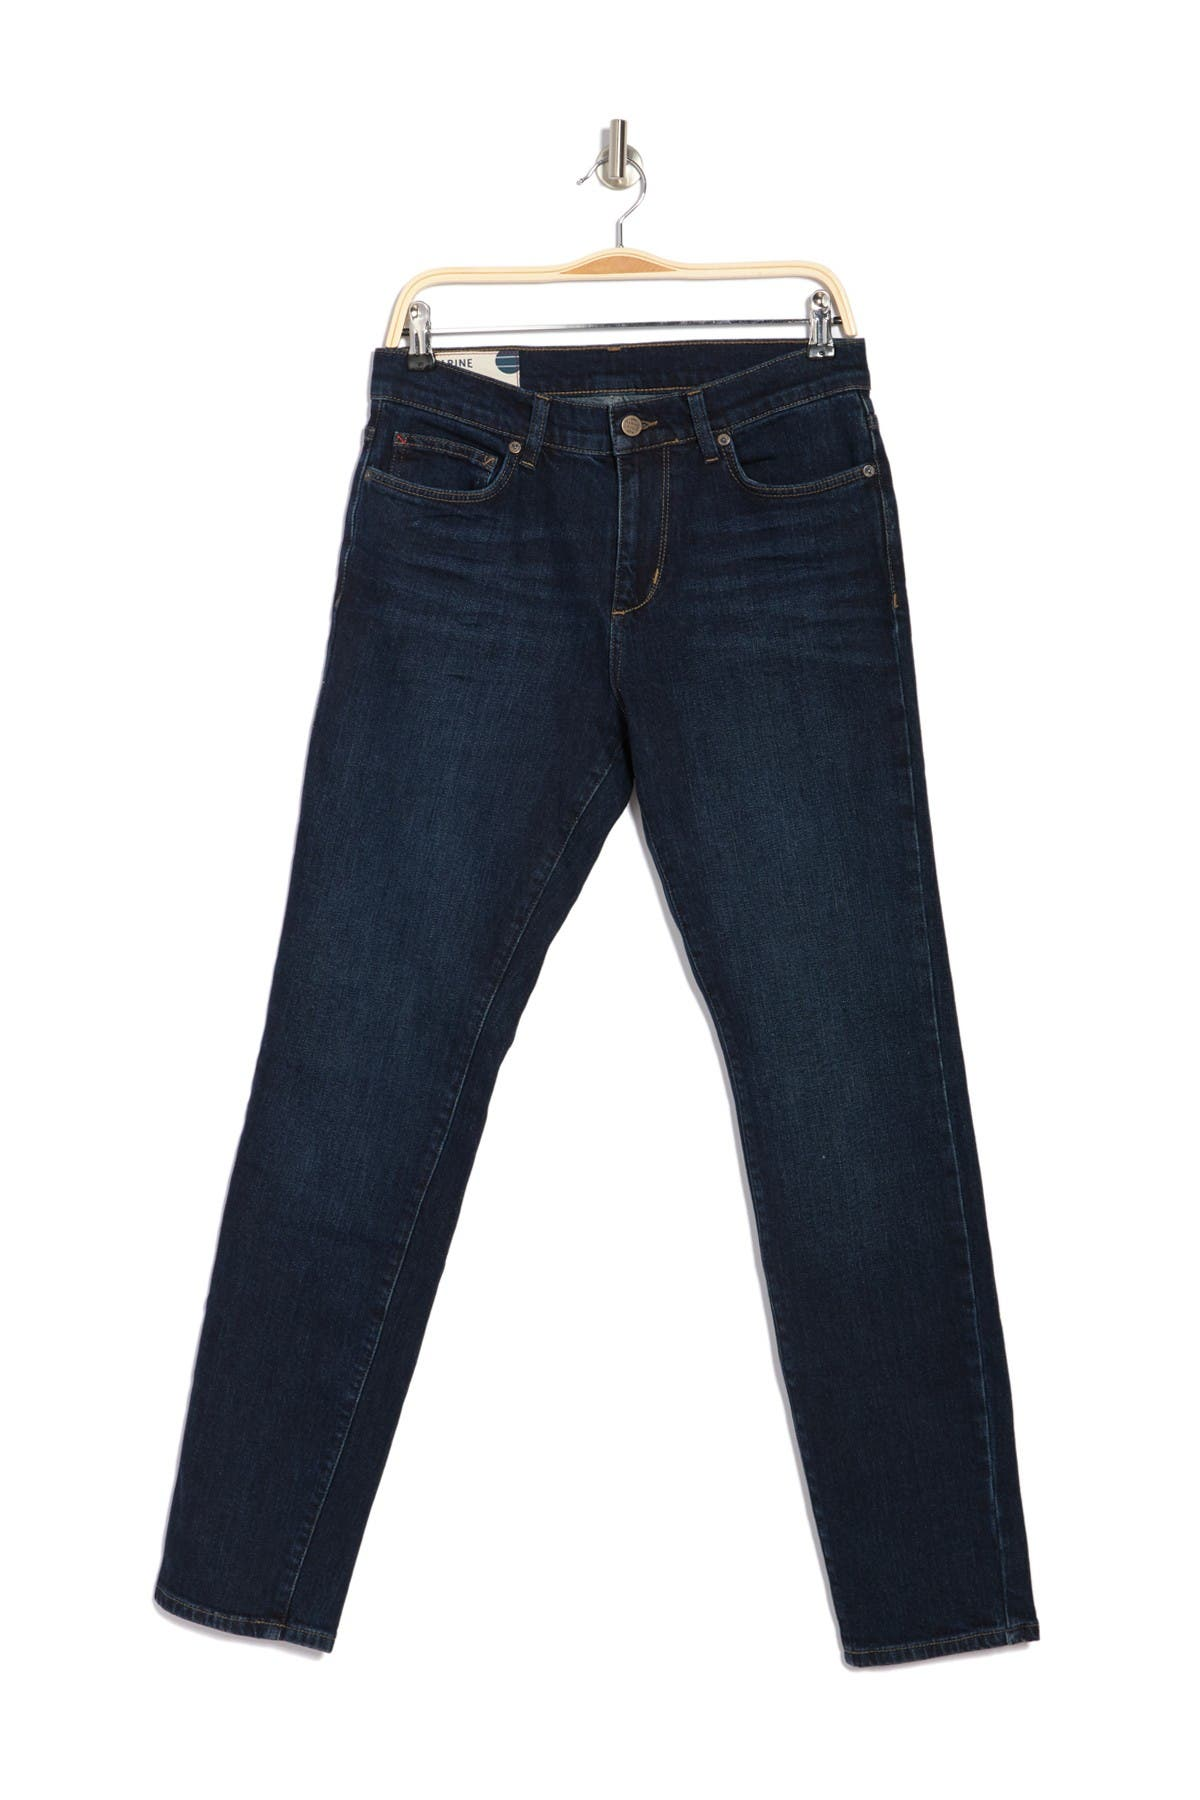 Image of Marine Layer Original Slim Fit Jeans